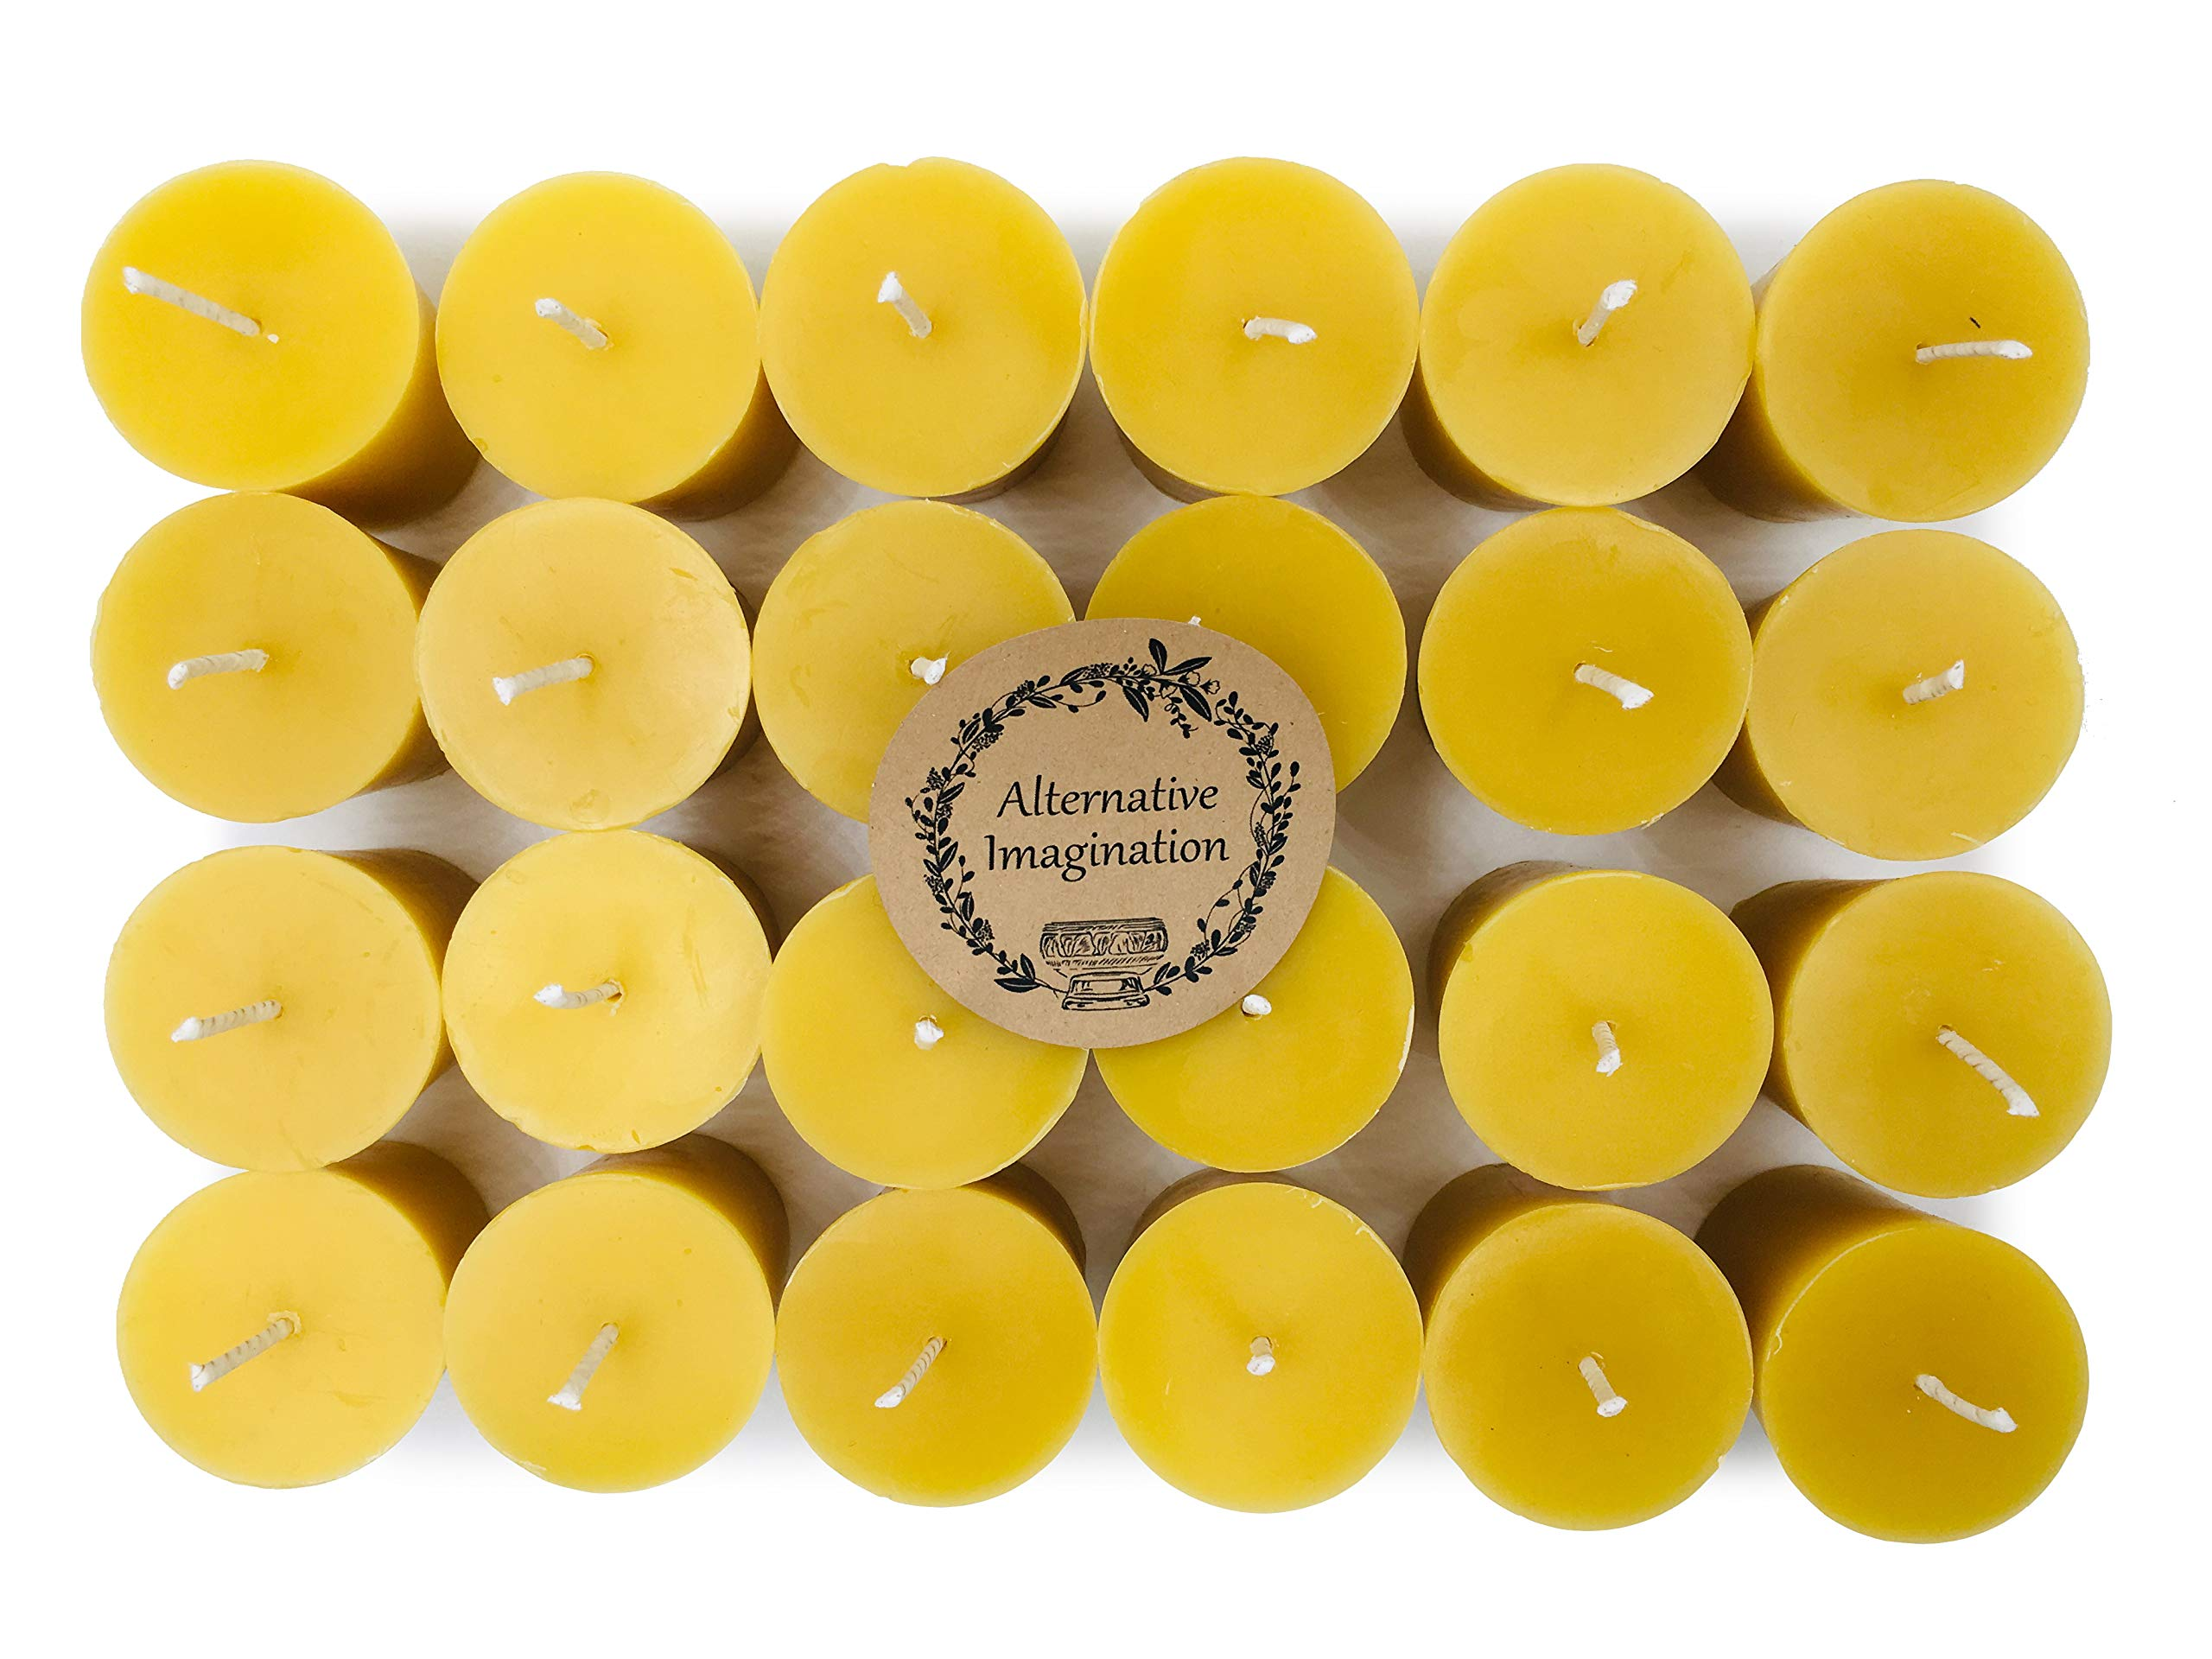 Alternative Imagination Premium 100% Pure, Natural Beeswax Votive Candles - Pack of 24